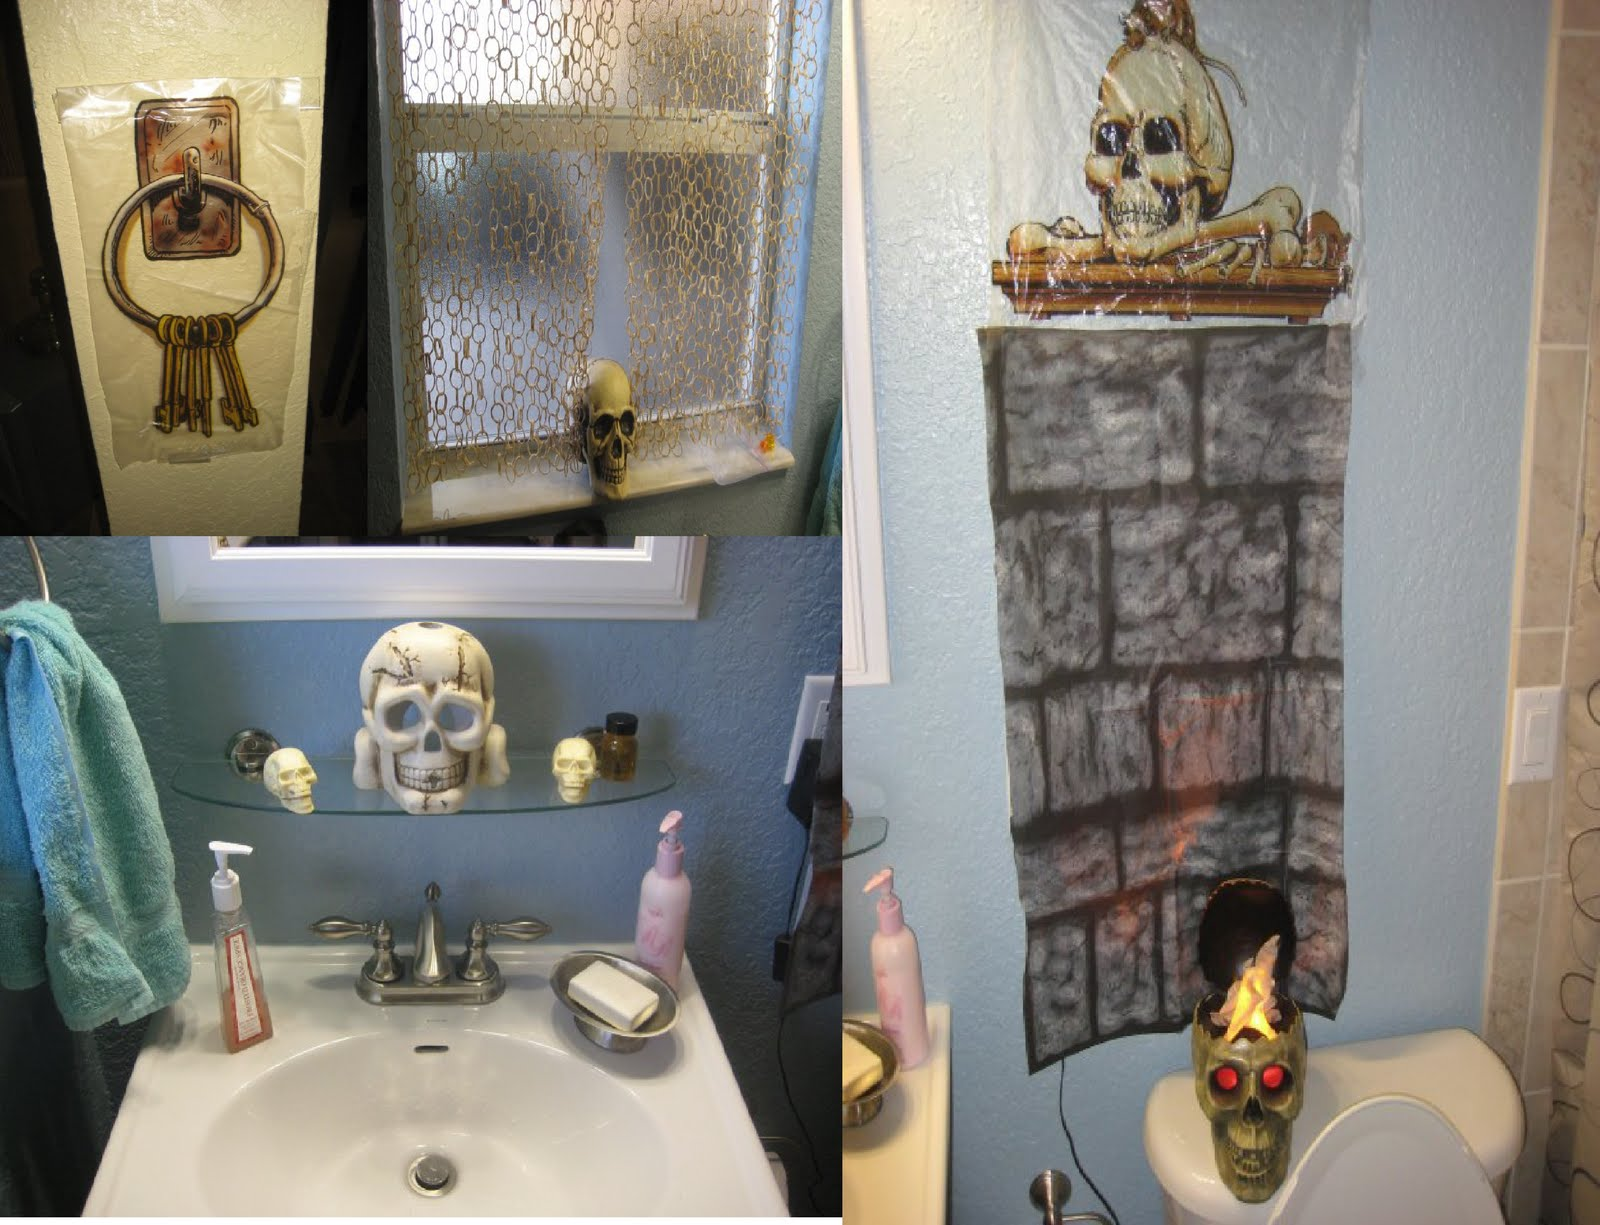 Pirate bathroom decor for kids - Pirate Bathroom Decor For Kids